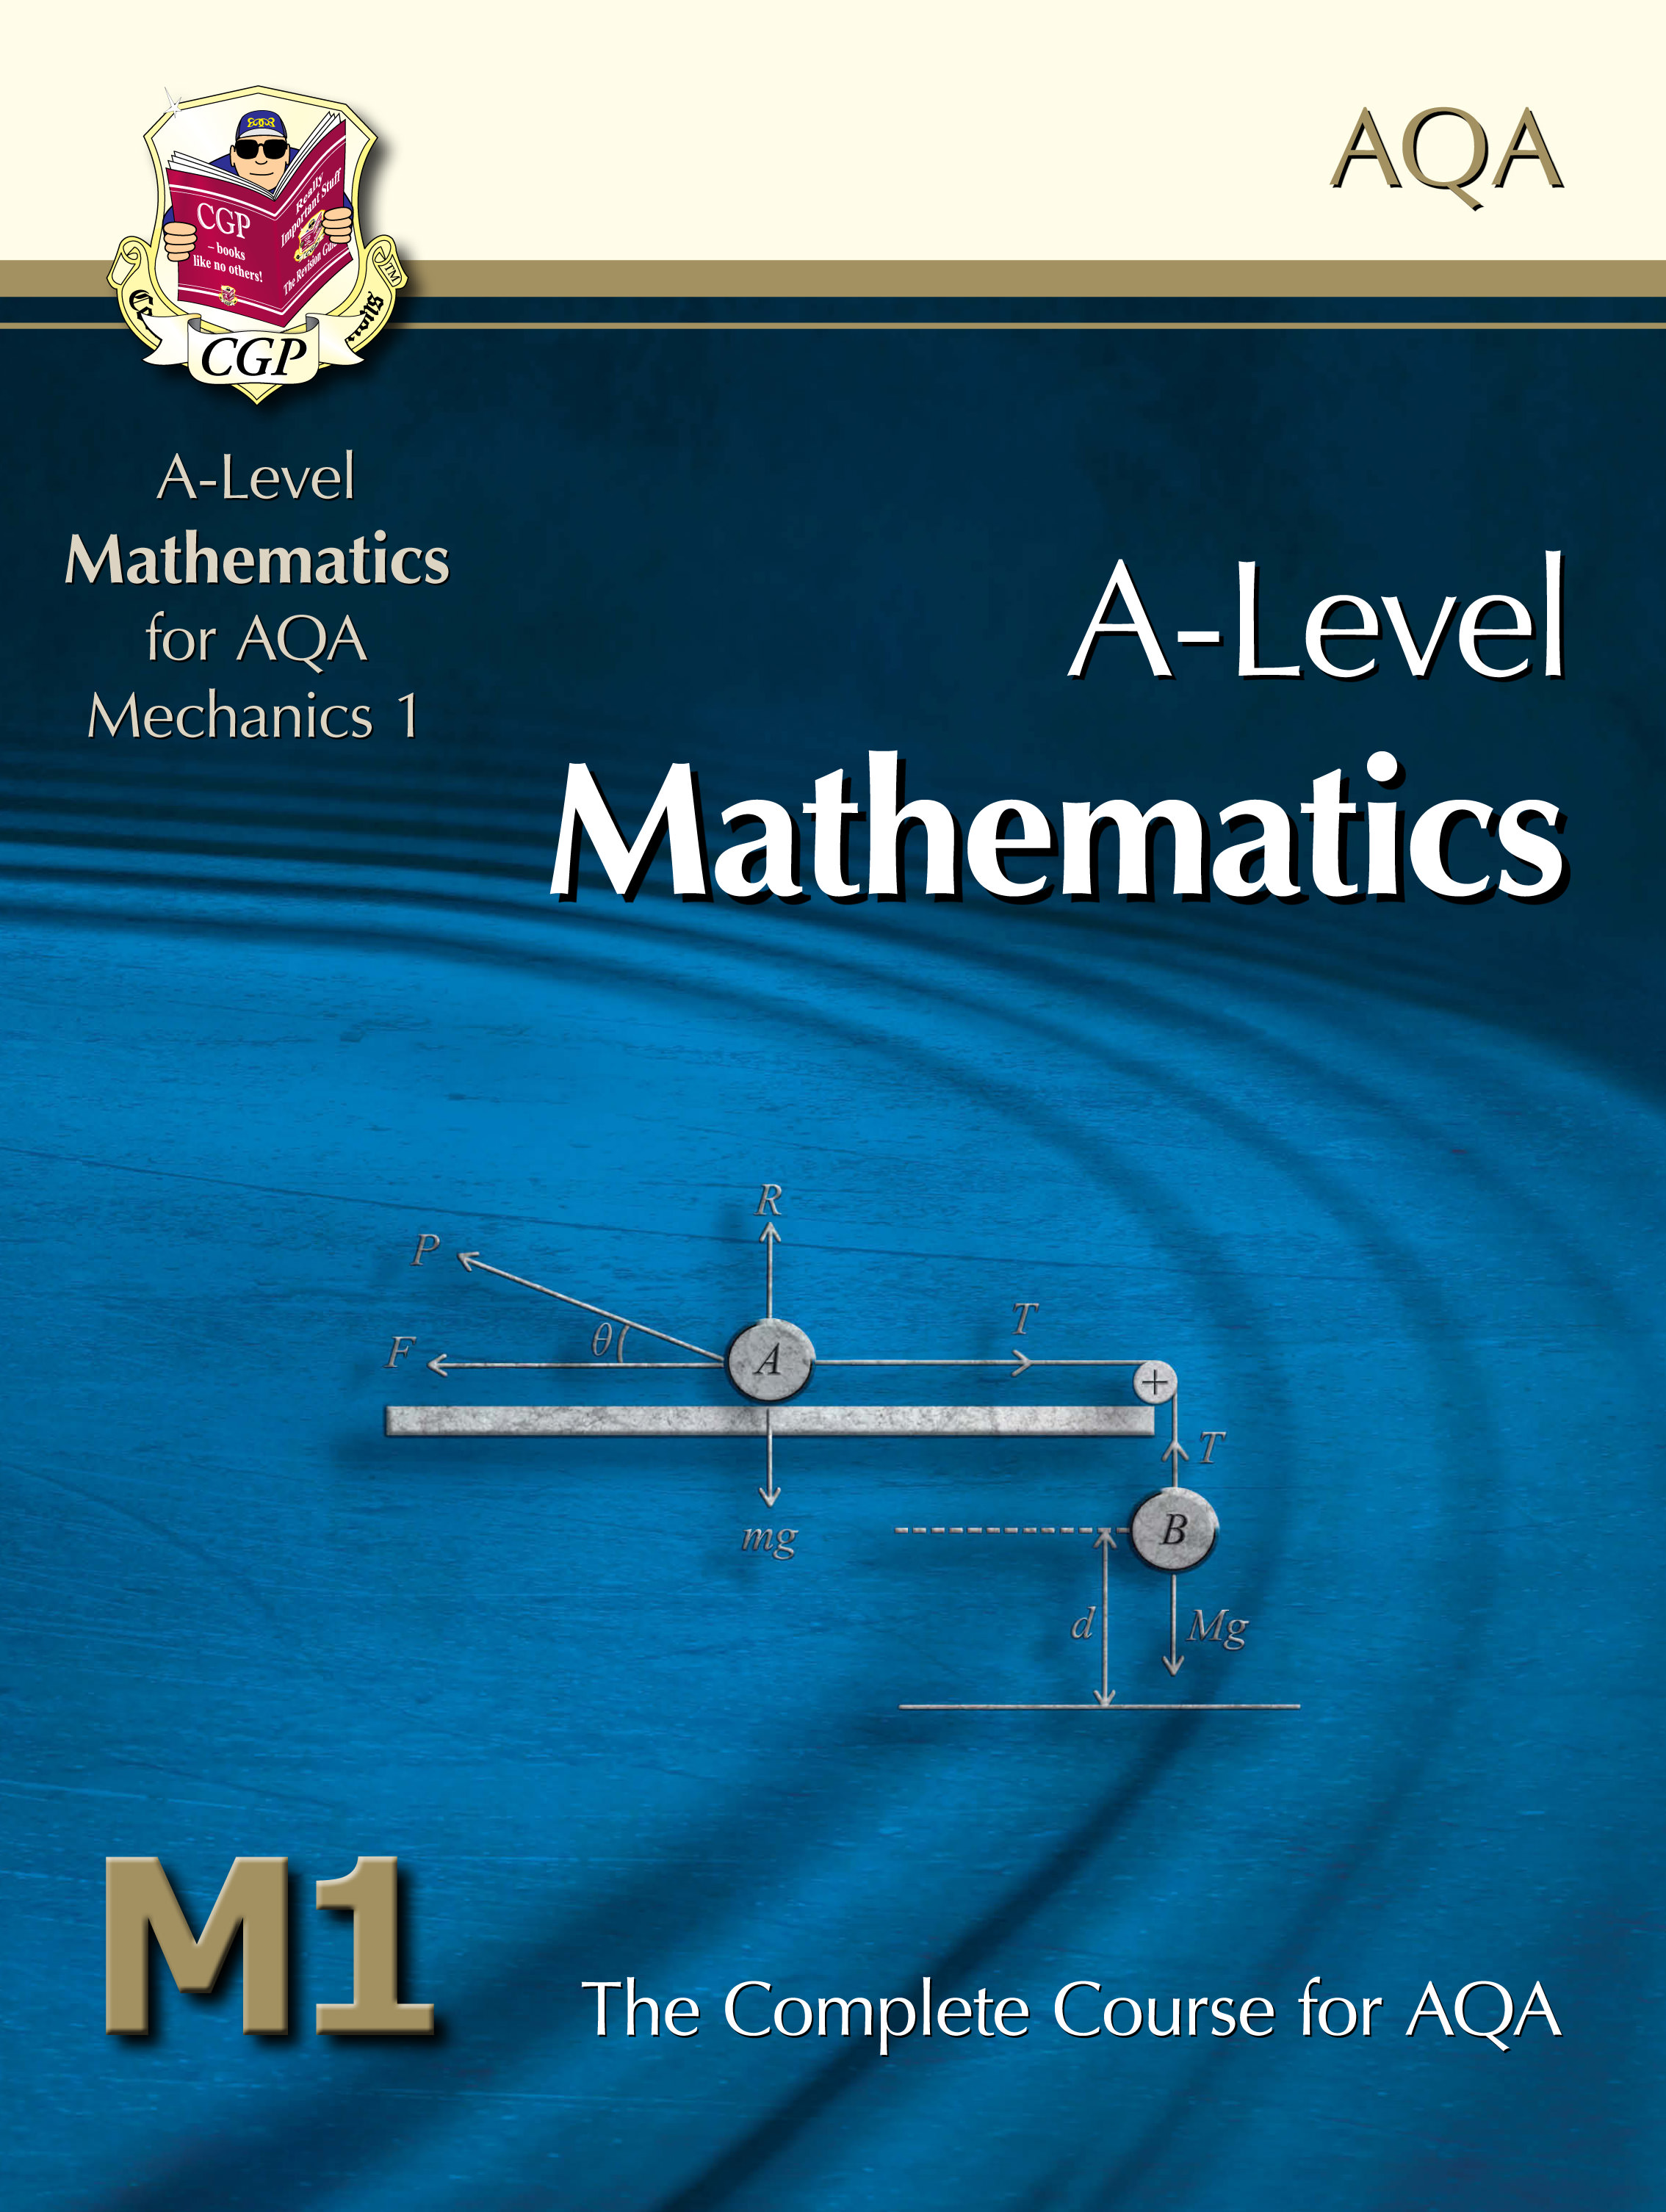 MAM1T51DK - A-Level Maths for AQA - Mechanics 1: Student Book